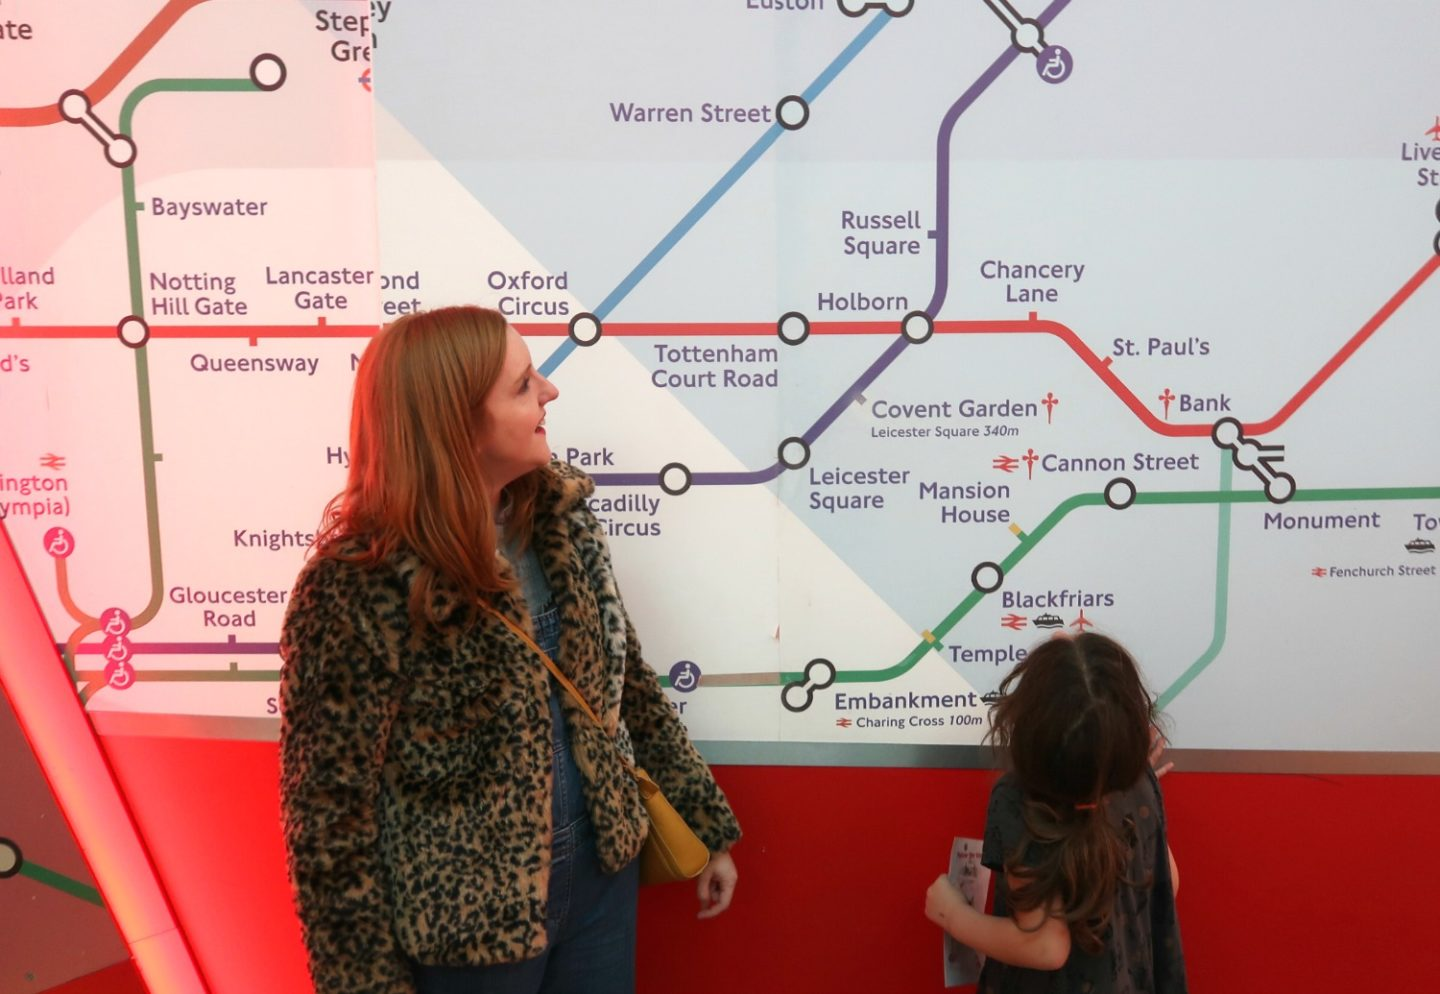 London Transport Museum - giant tube map